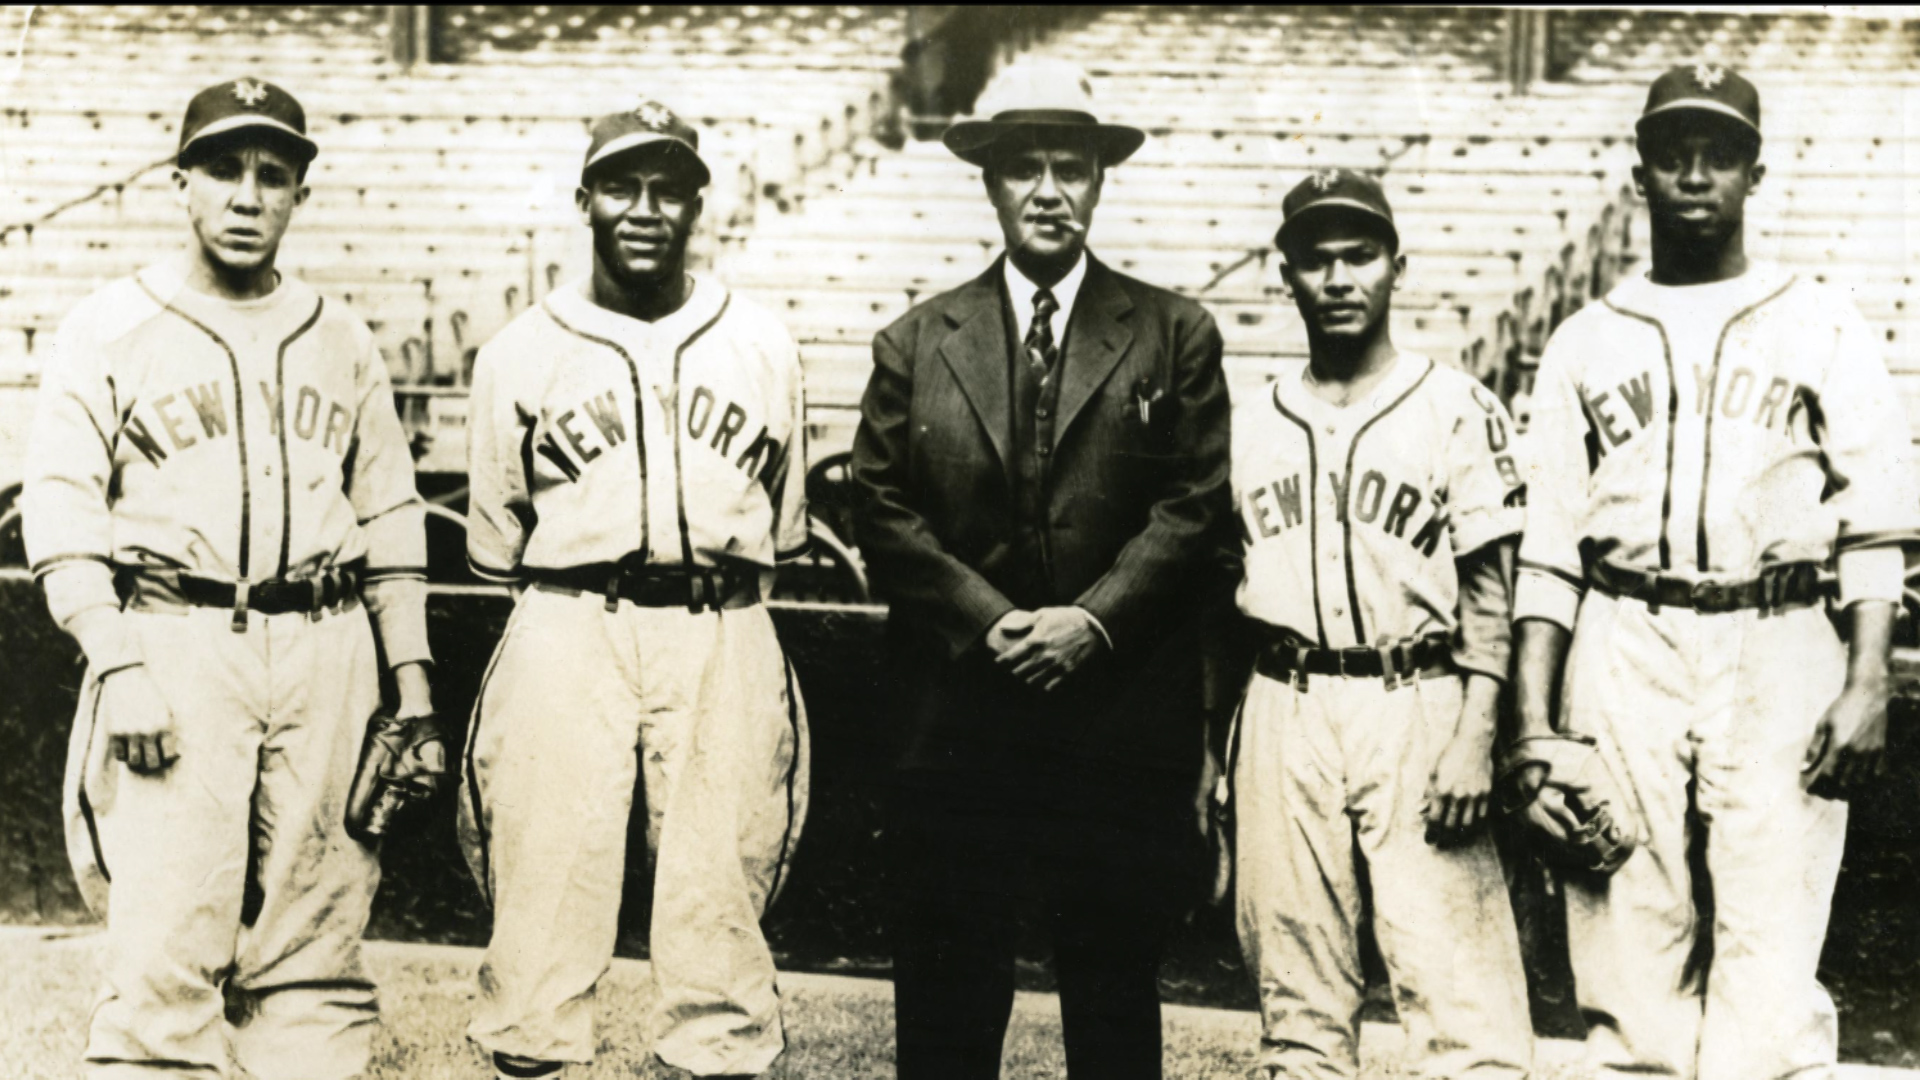 An exhibition that will tell the stories of Negro Baseball Leagues that played a significant role in bringing the country together is opening soon downtown.